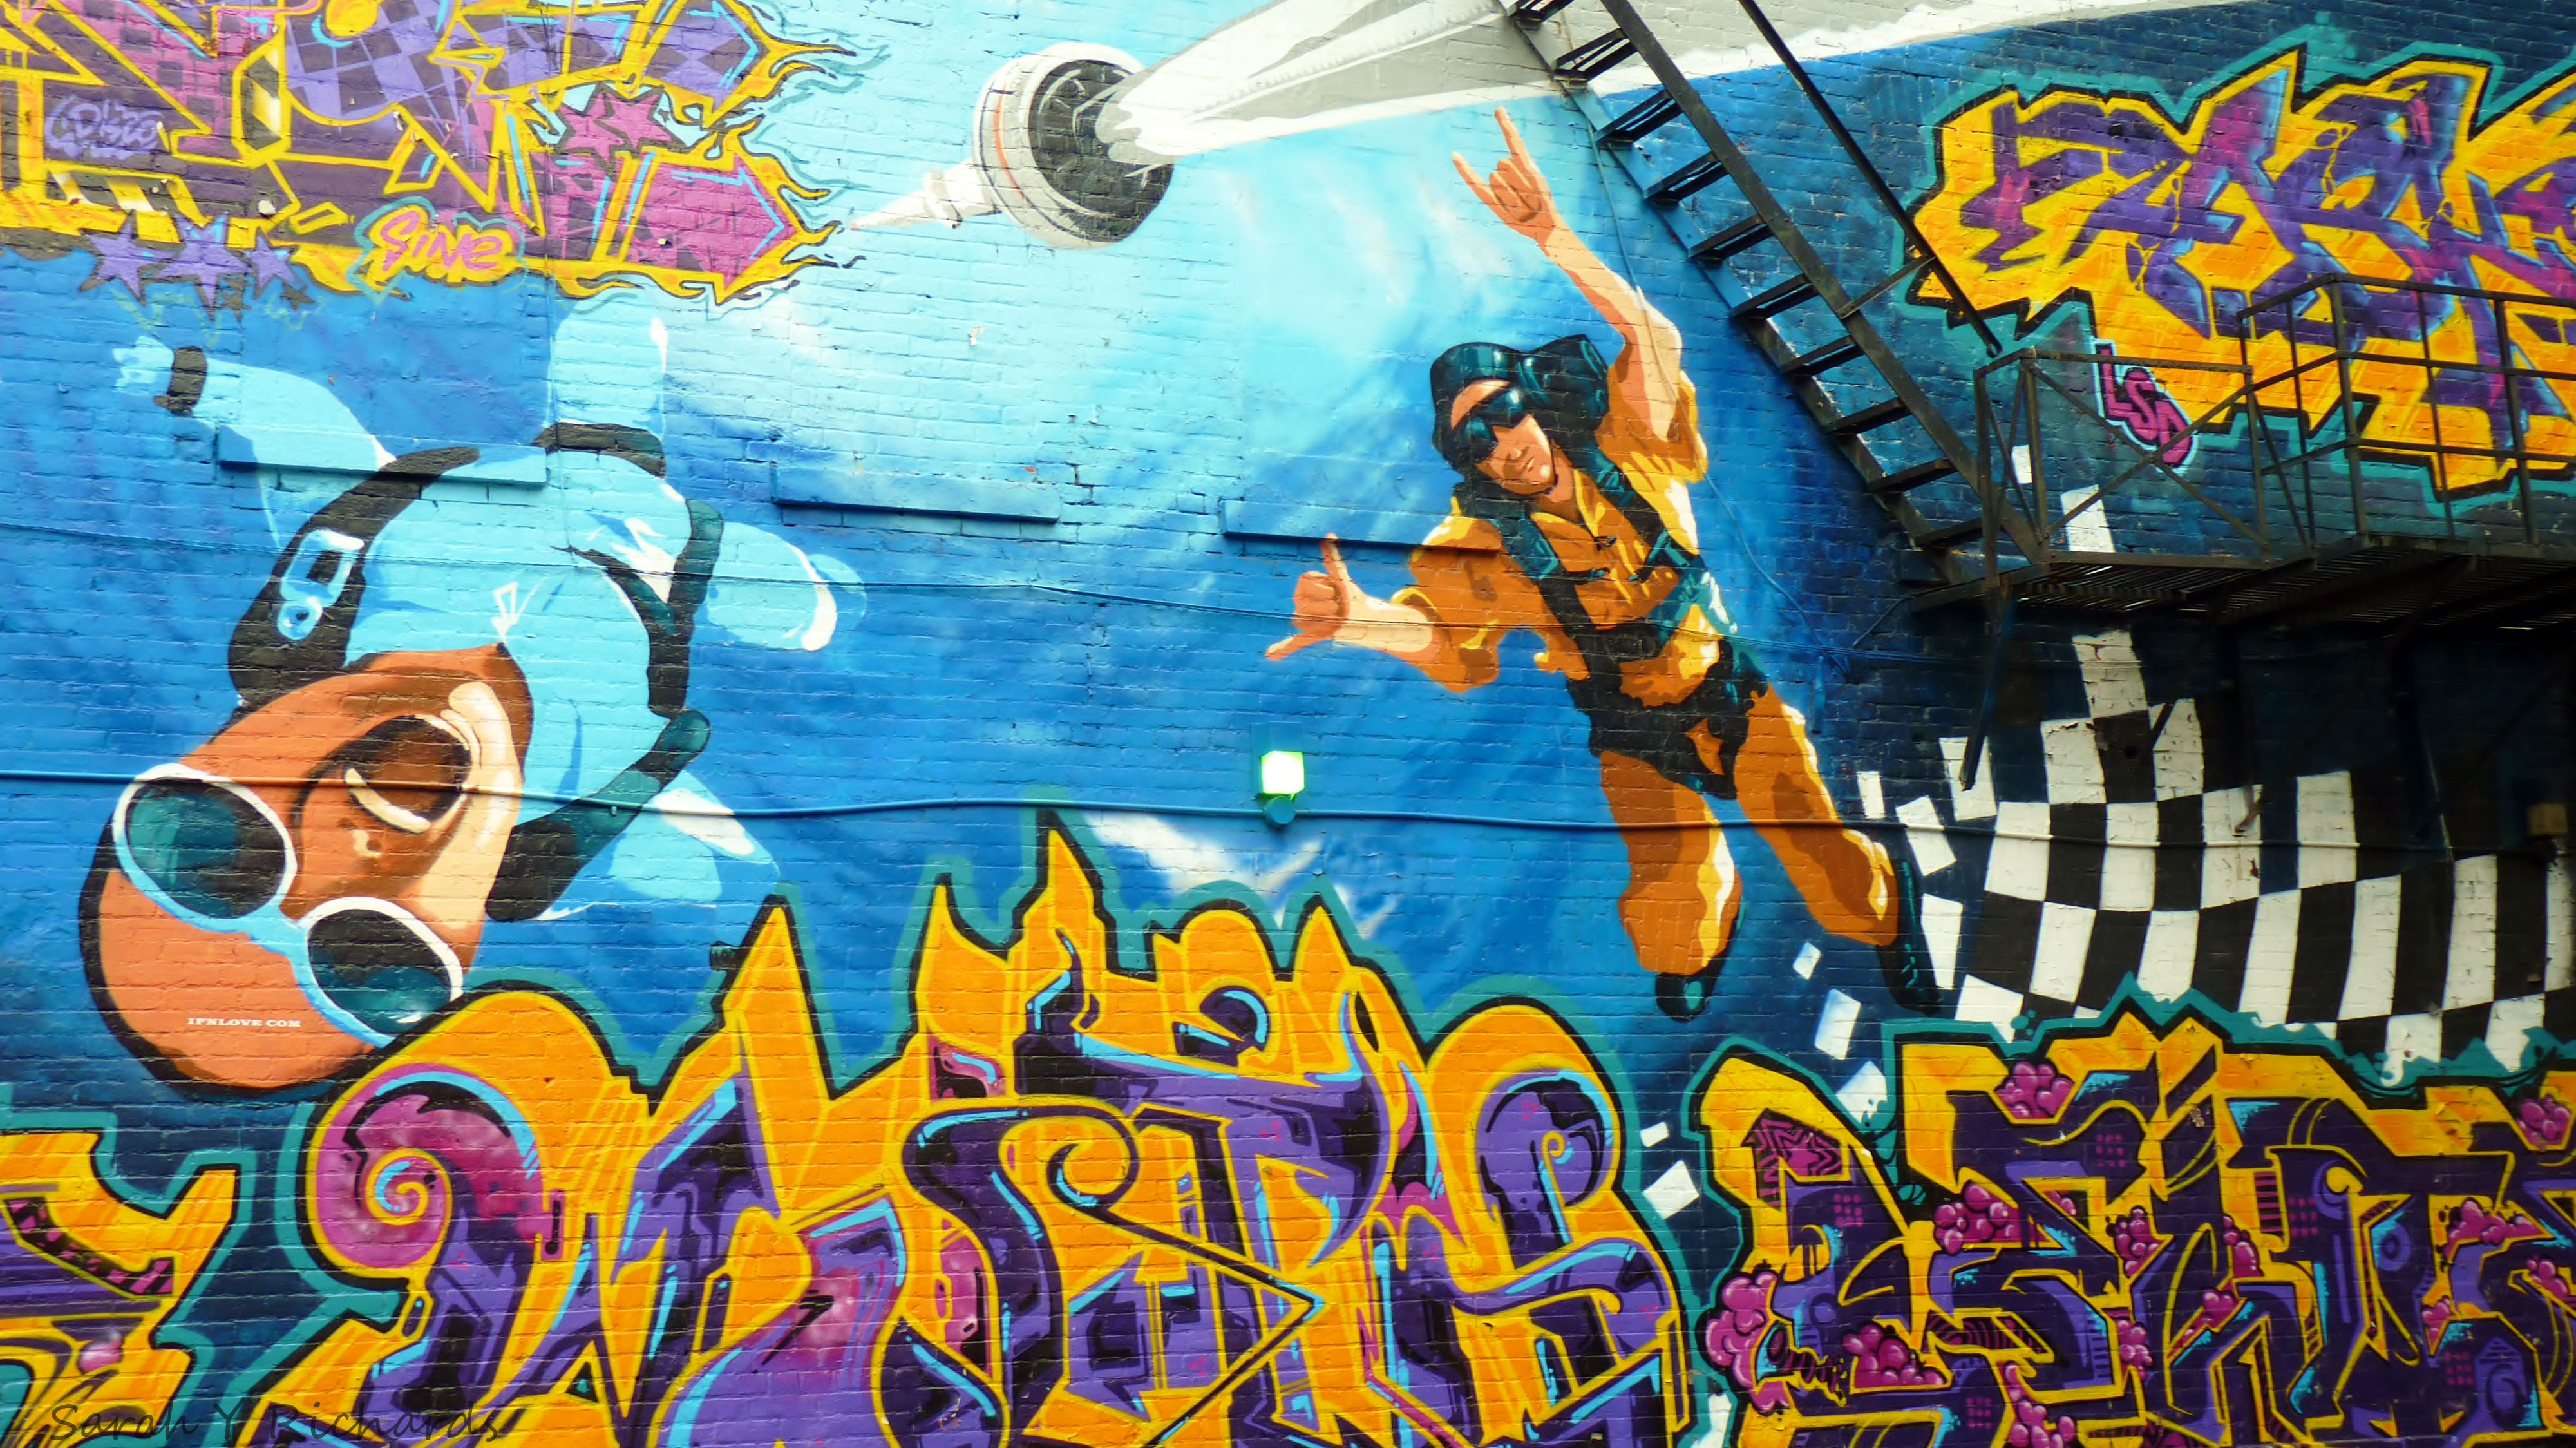 Uno de los graffitis en la calle Queen Street West.